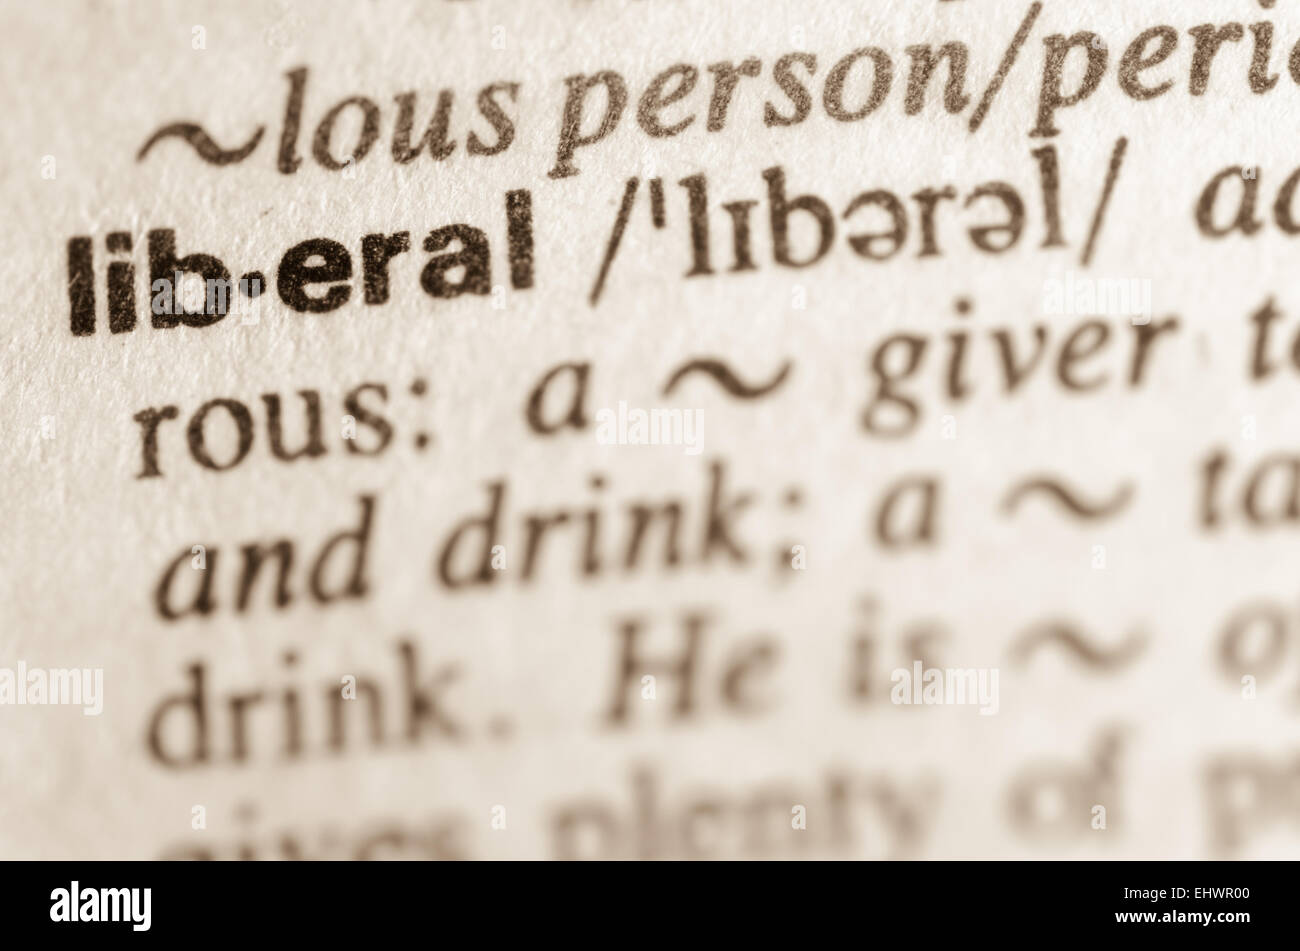 definition of word liberal in dictionary stock photo: 79857456 - alamy